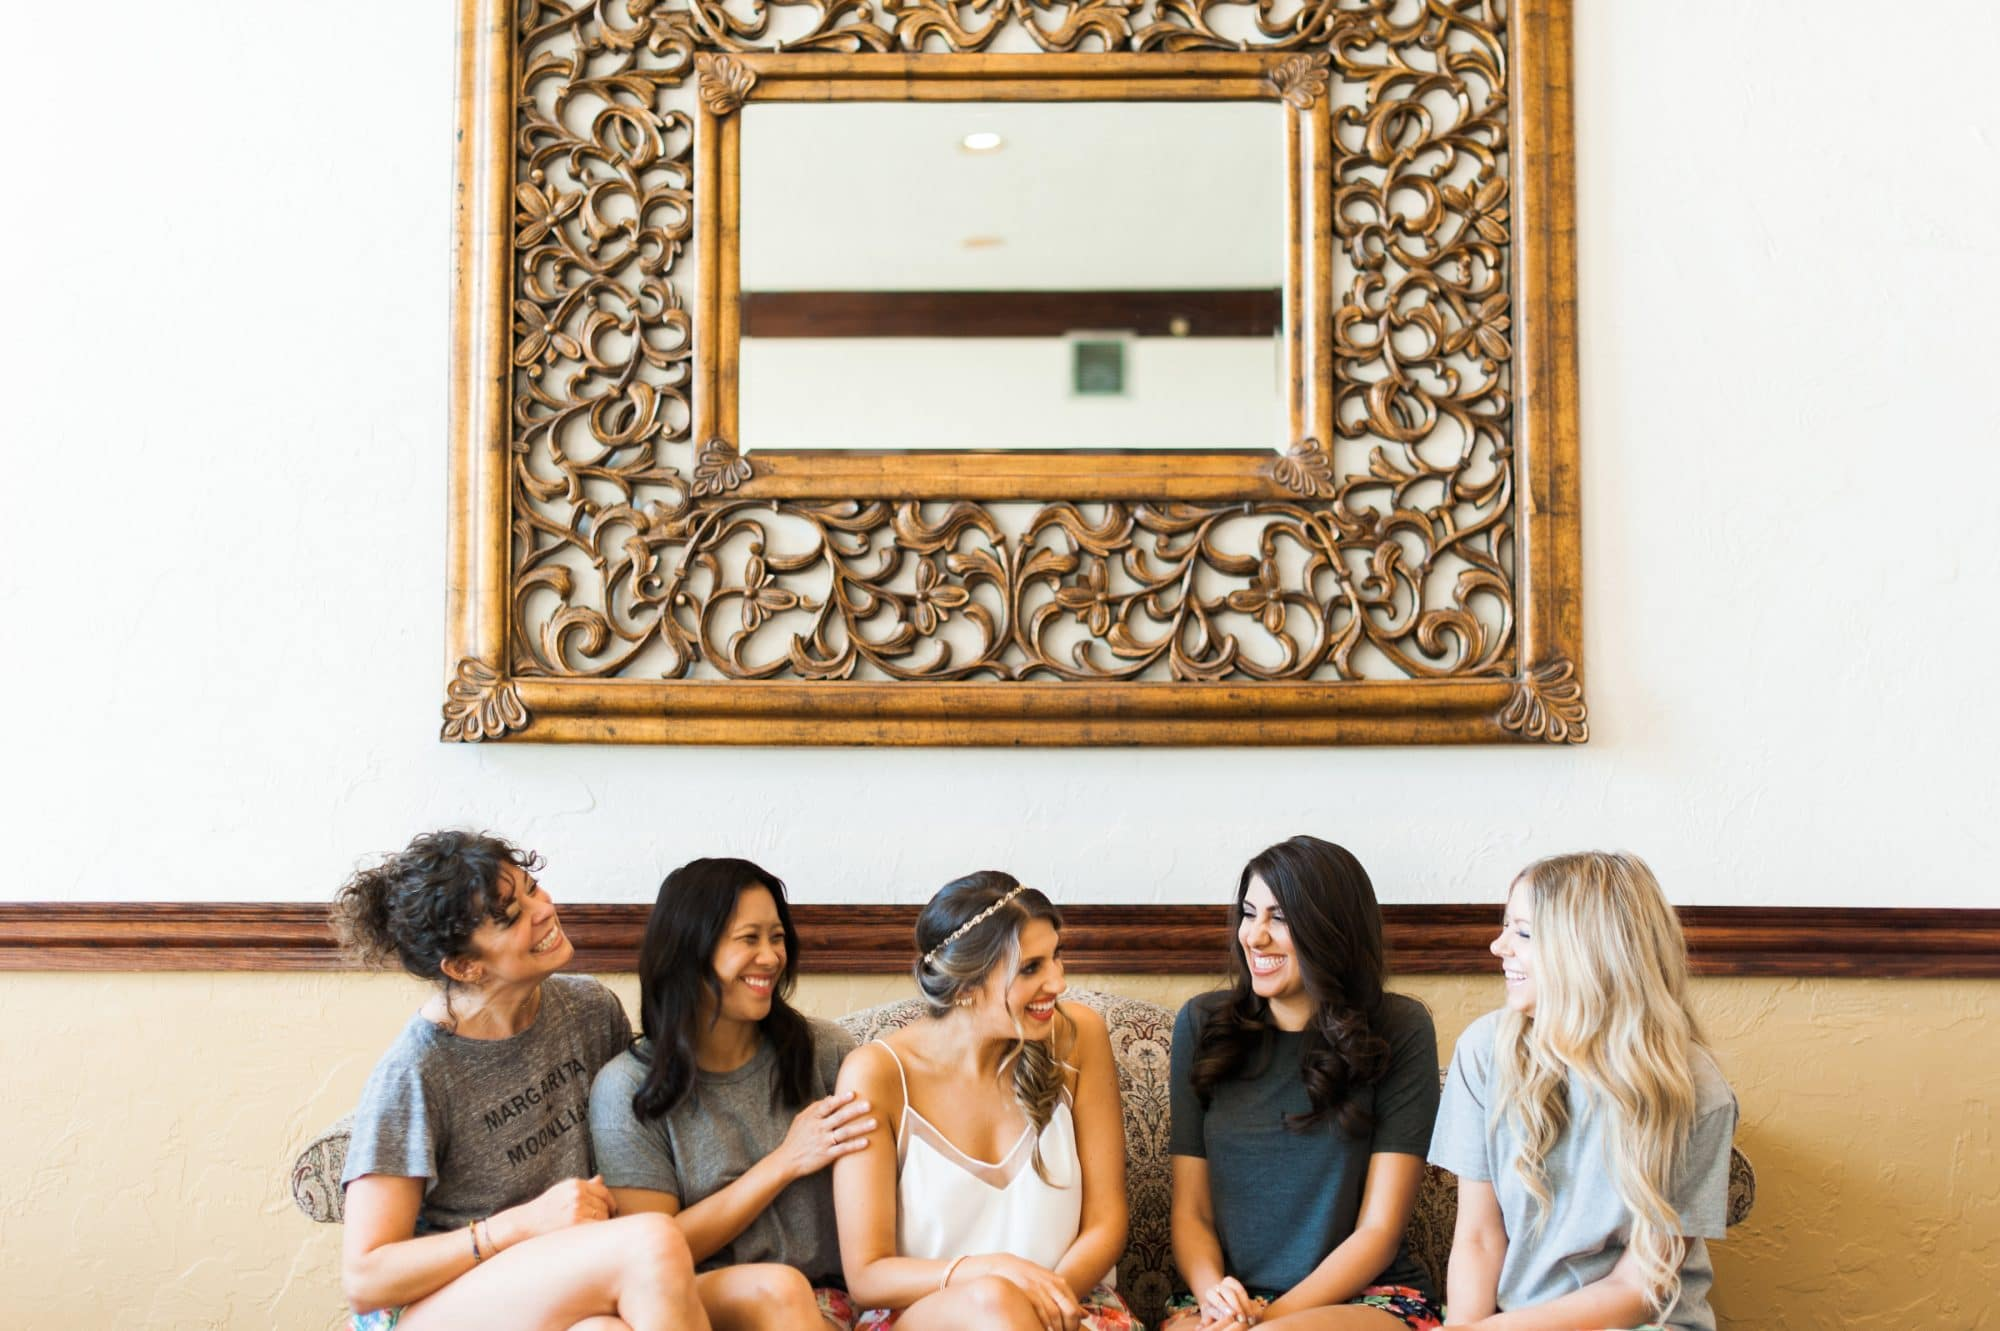 Bride and bridesmaids chatting on couch